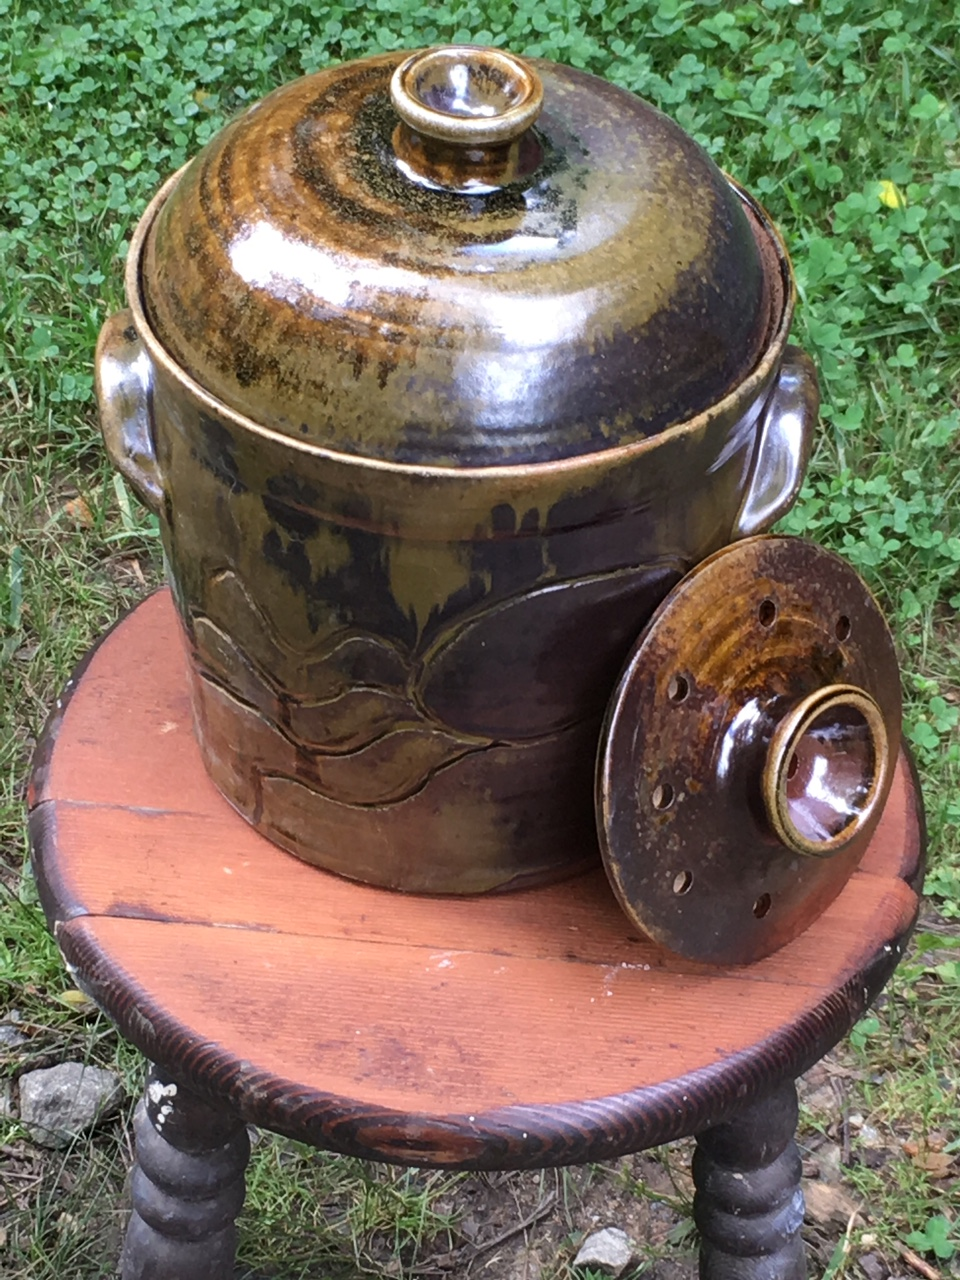 A 1 1/2 gallon crock with its' included ceramic weight shown at the side.  The weight is used to keep fermenting material submerged.